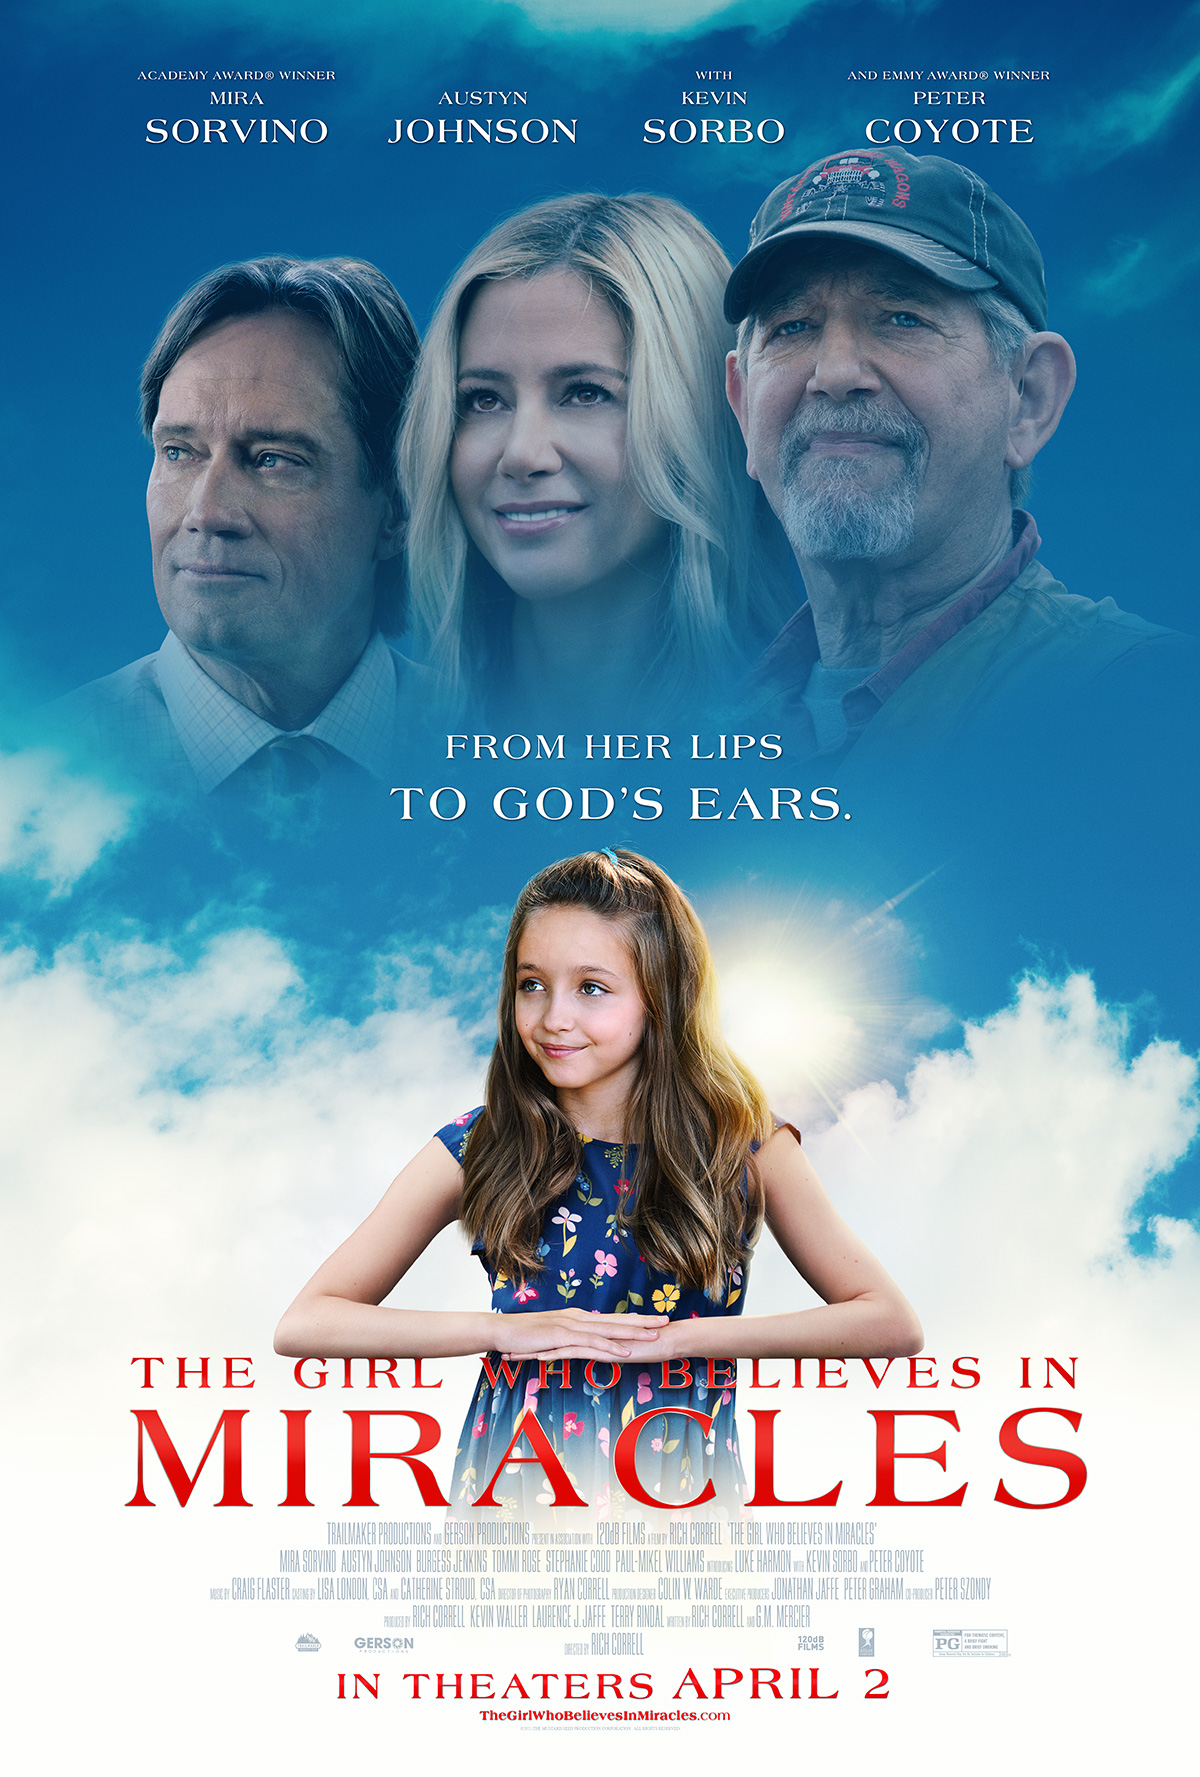 The Girl Who Believes in Miracles (2021) - IMDb